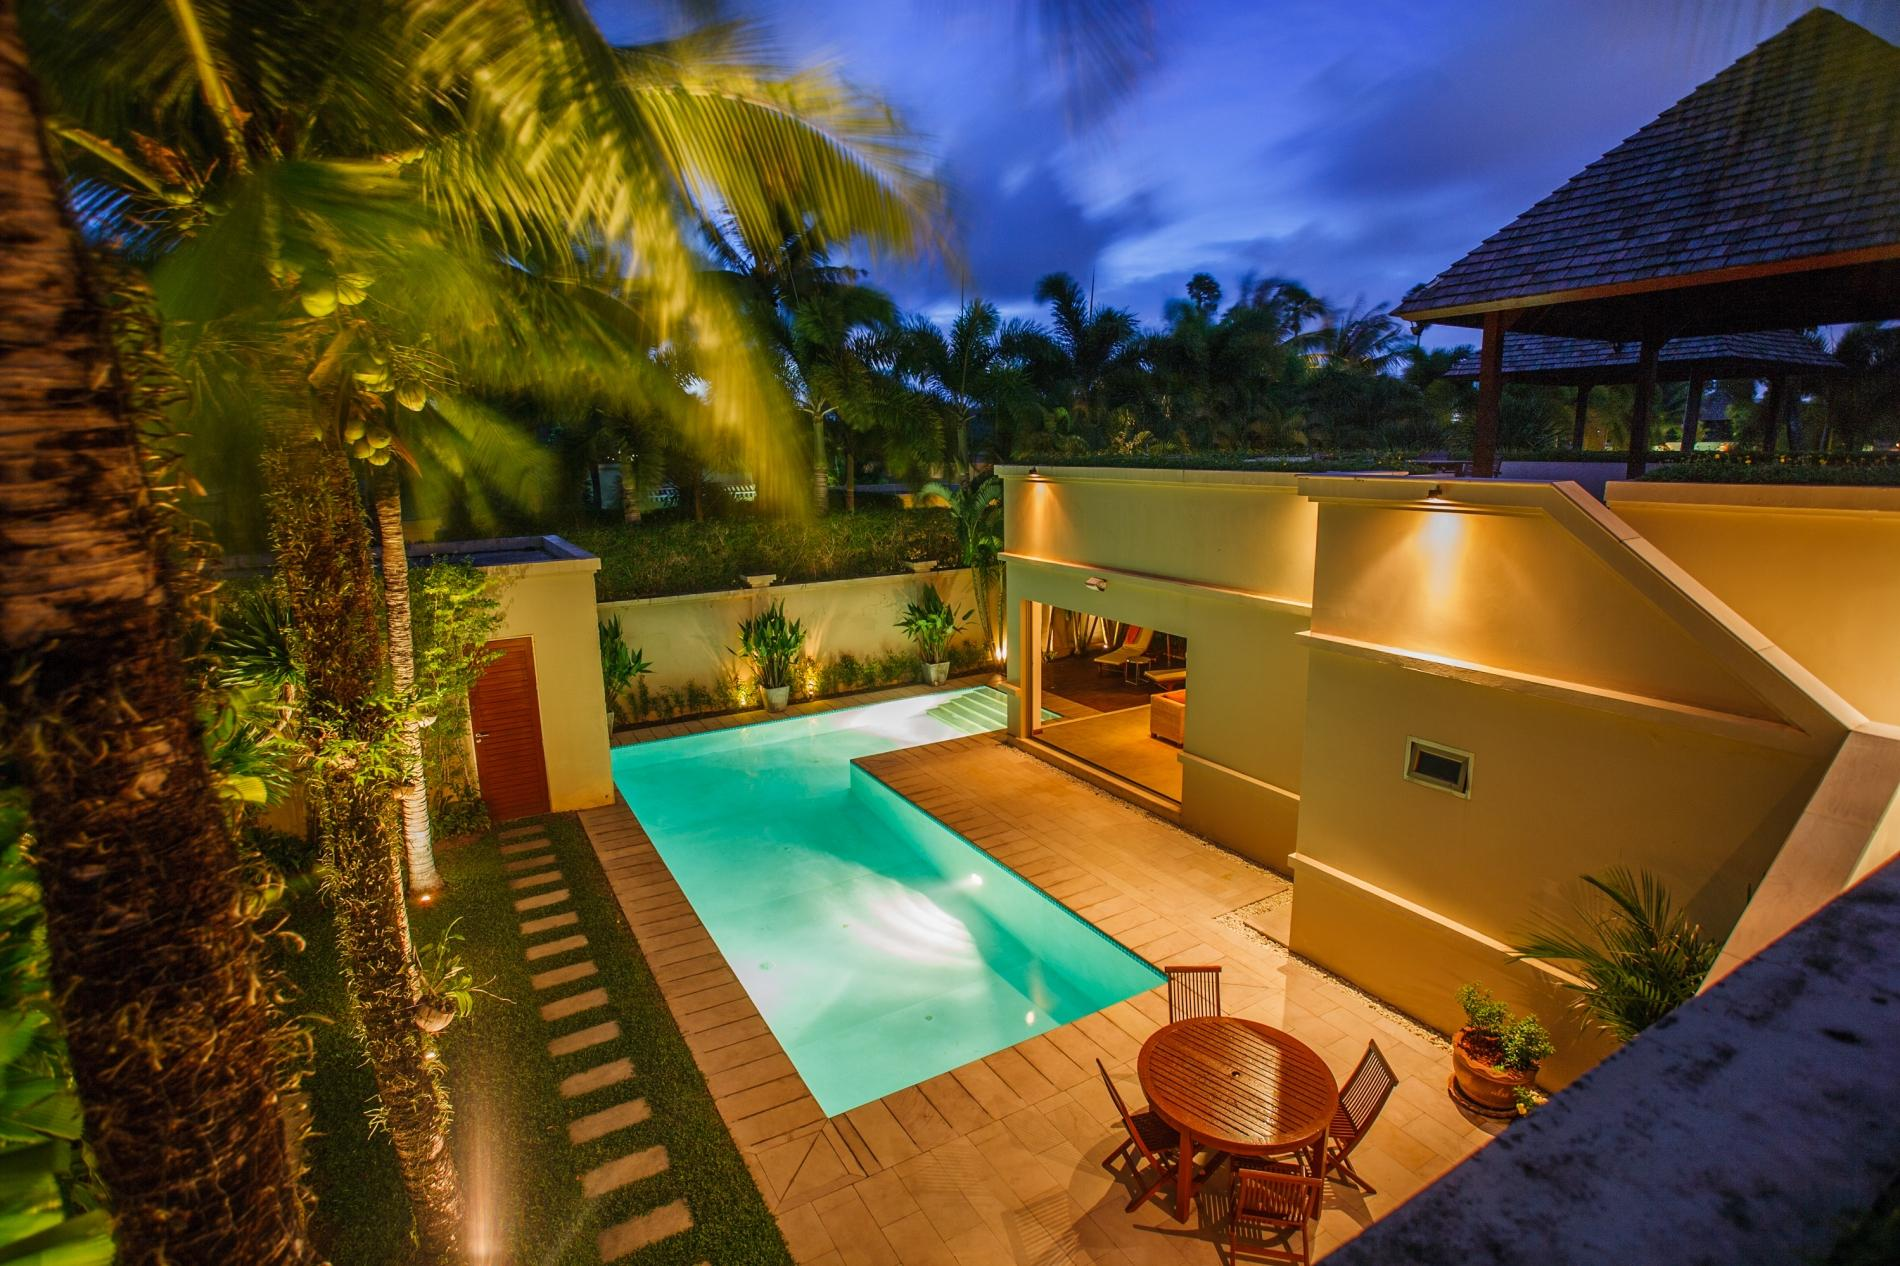 Apartment TR111 - Private pool villa in Bang Tao Residence - 3 bedrooms photo 16937521